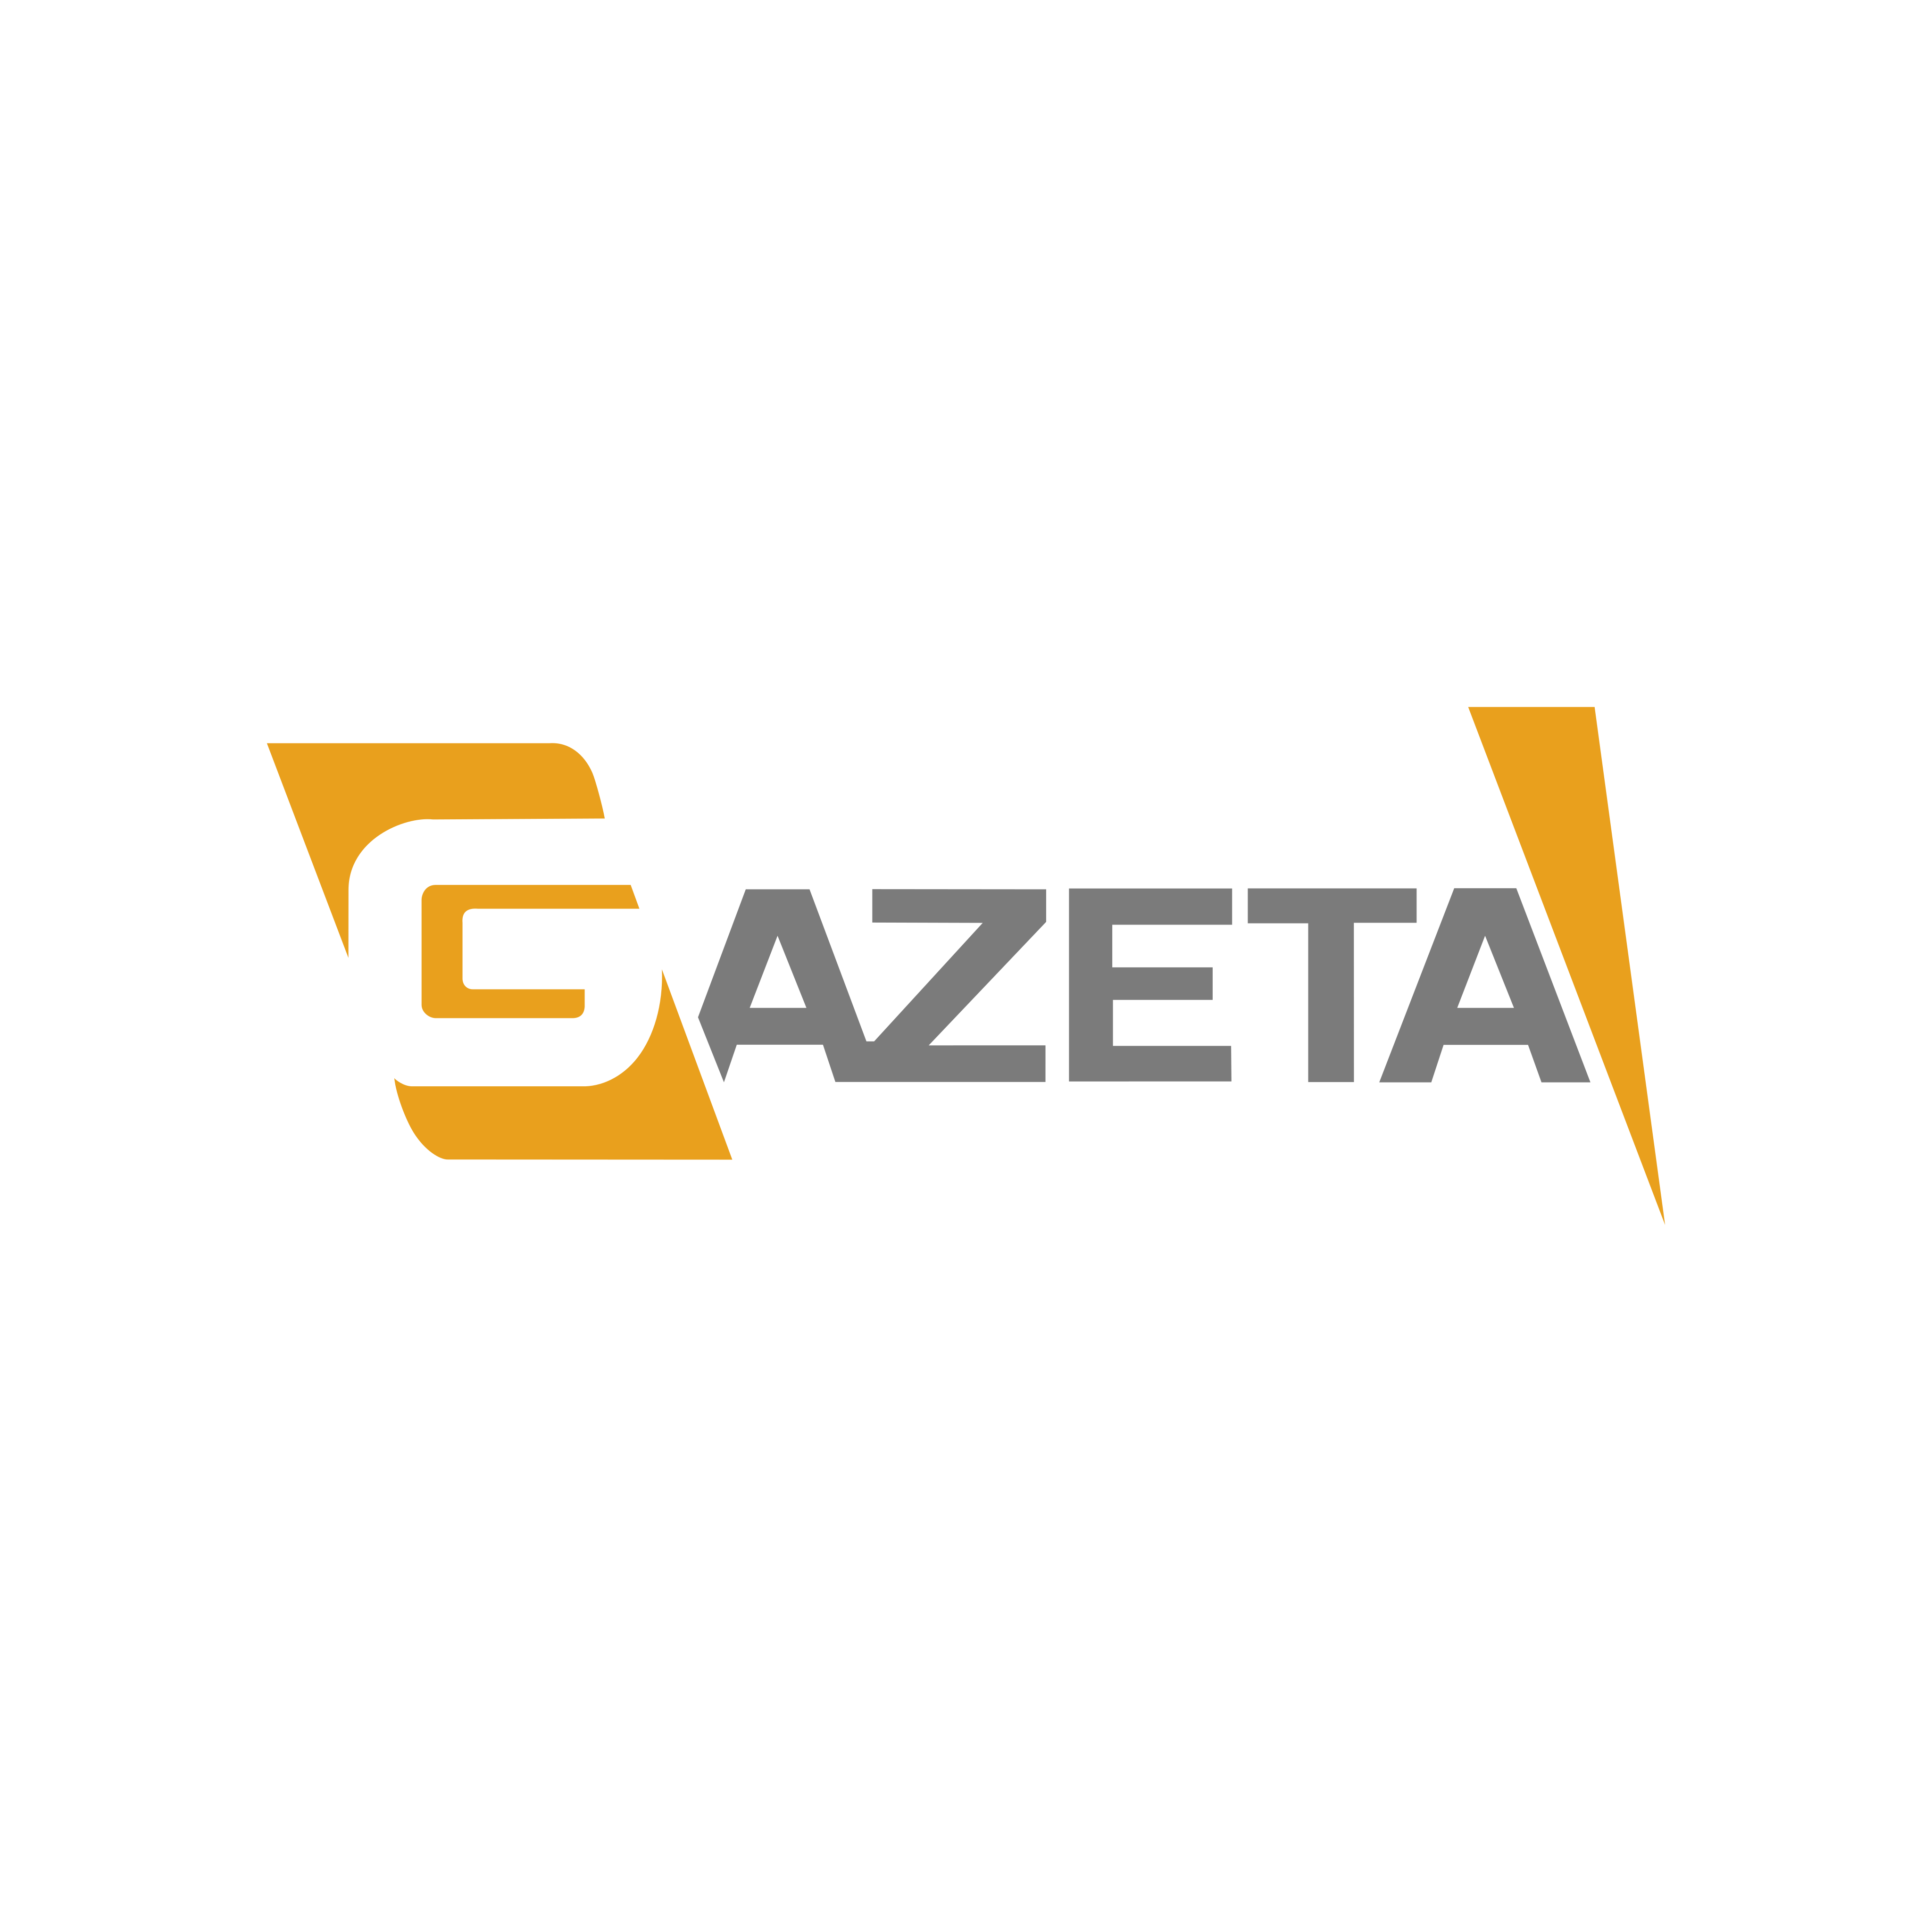 tv gazeta logo 0 - TV Gazeta Logo